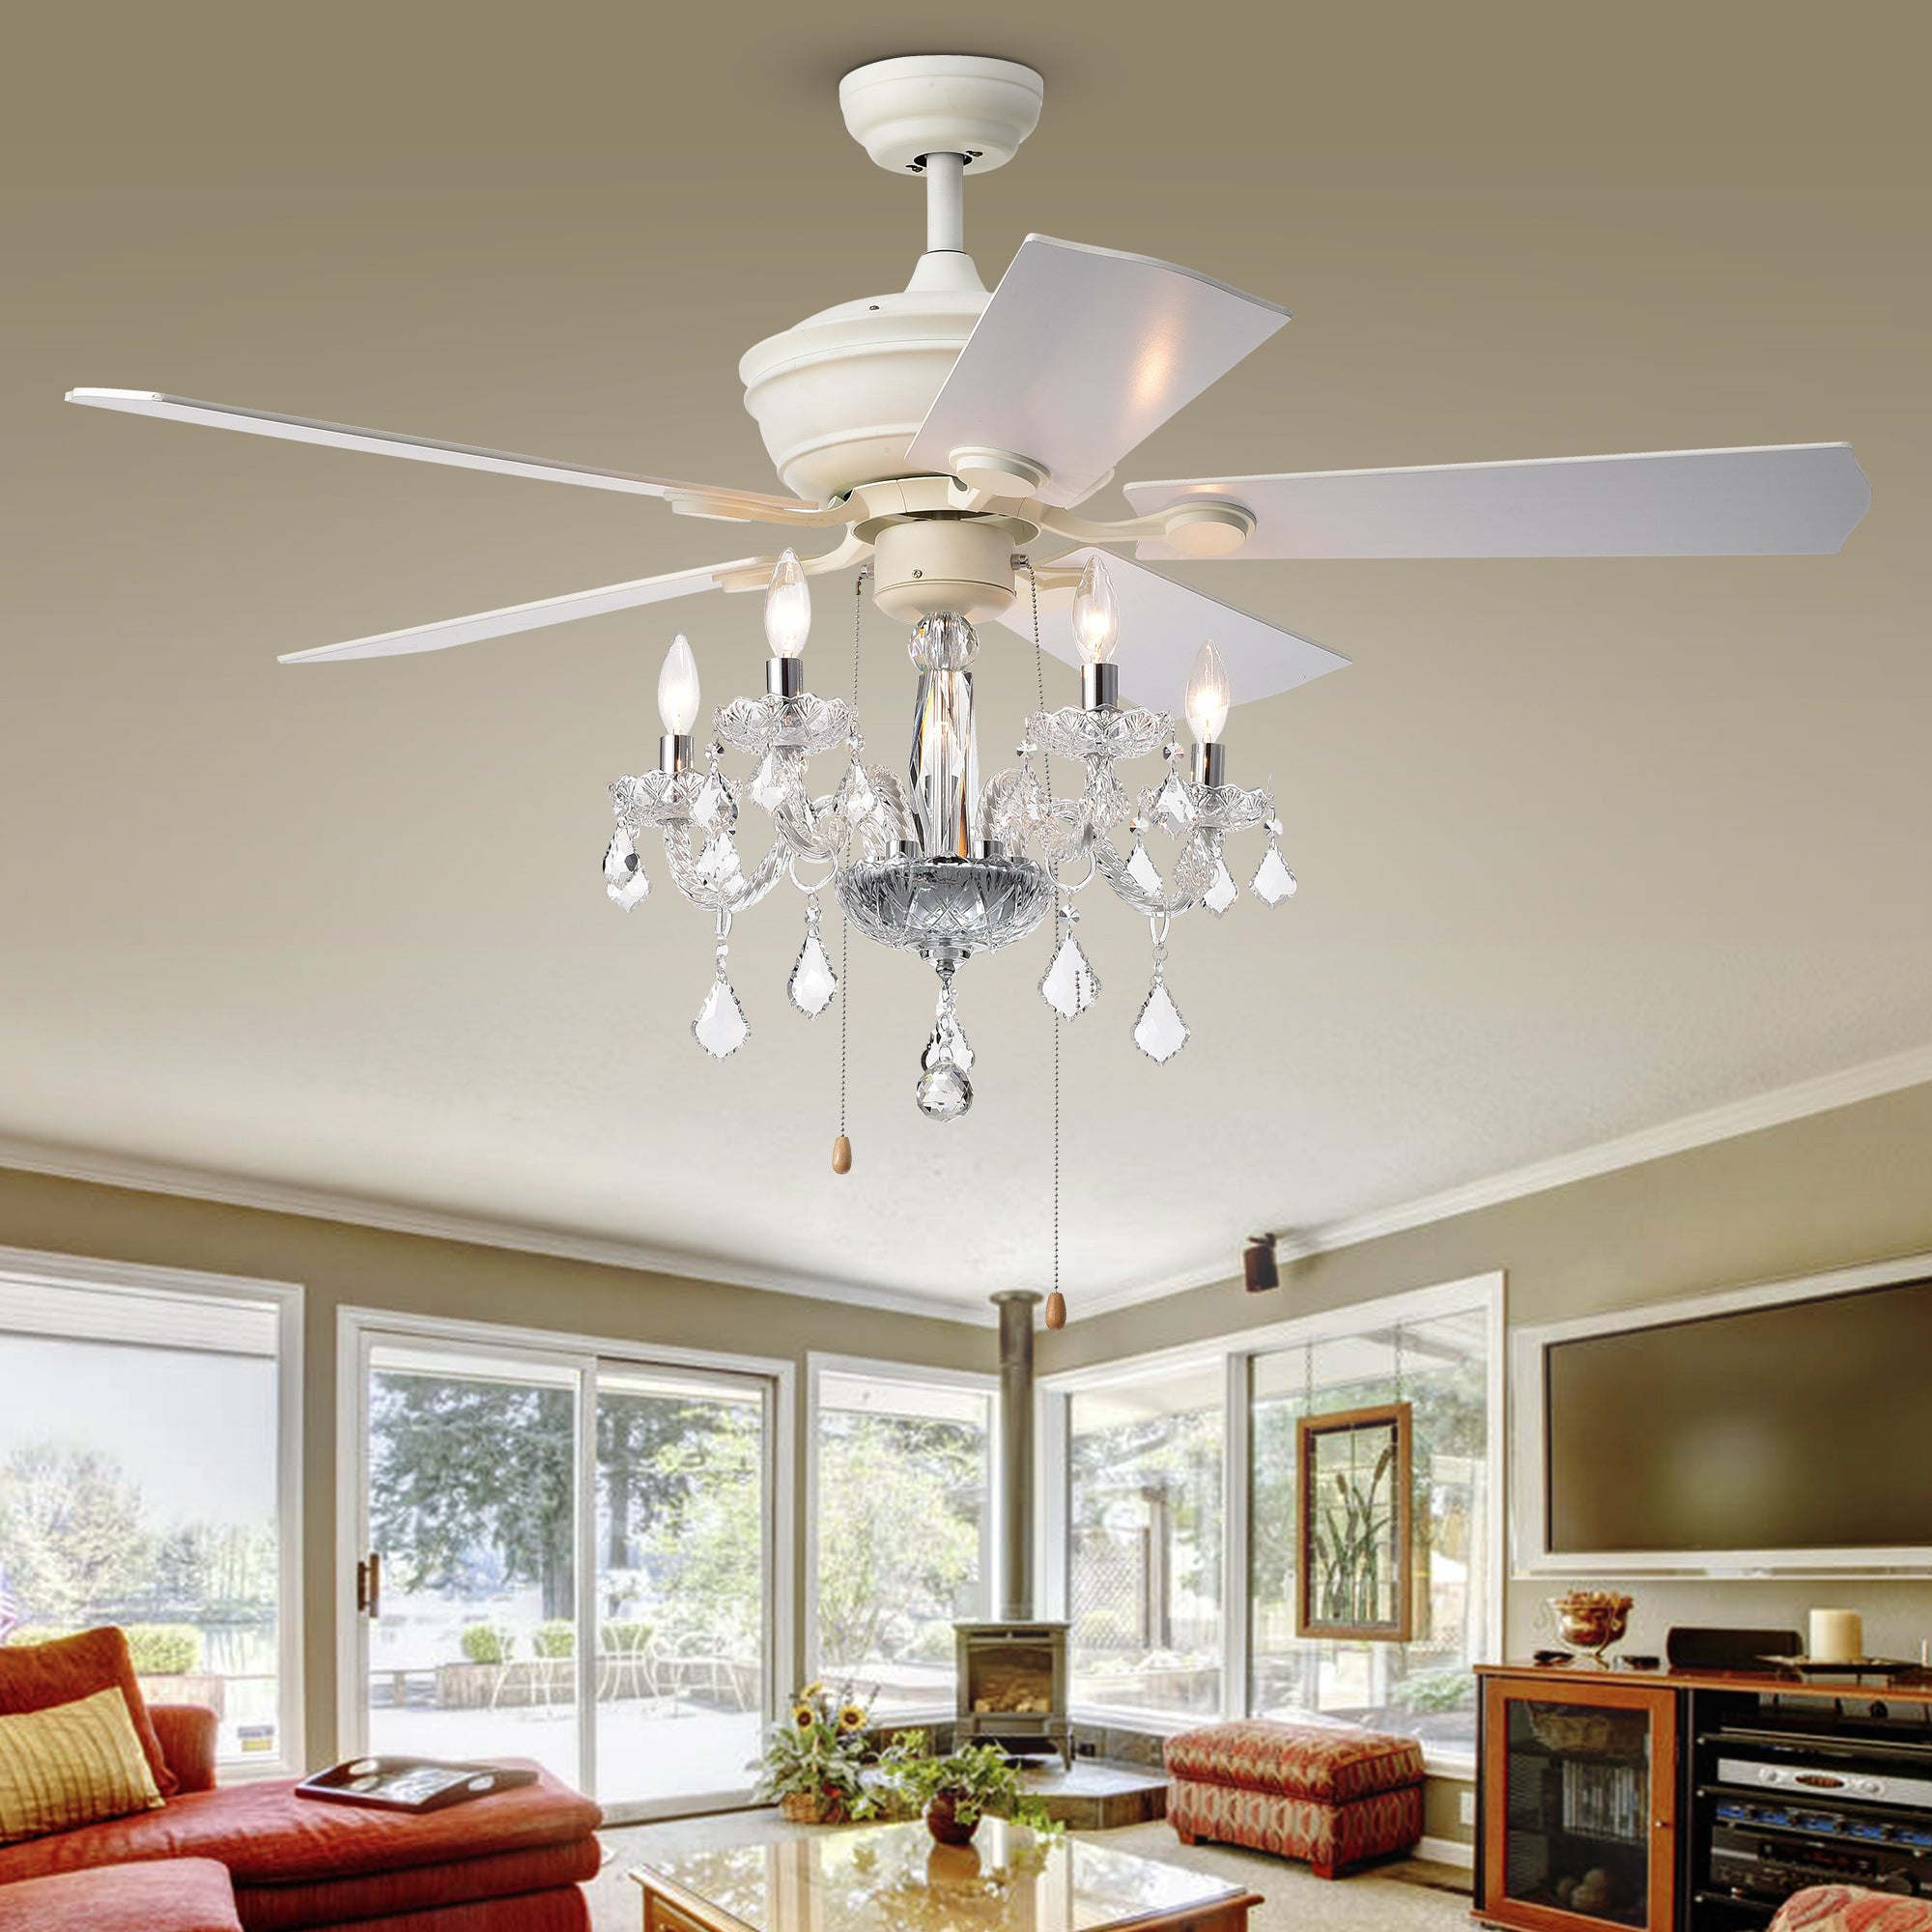 chandeliers fan crystal elegant and crystals lamp candle iron combo excellent white with extraordinary chandelier ceiling fans